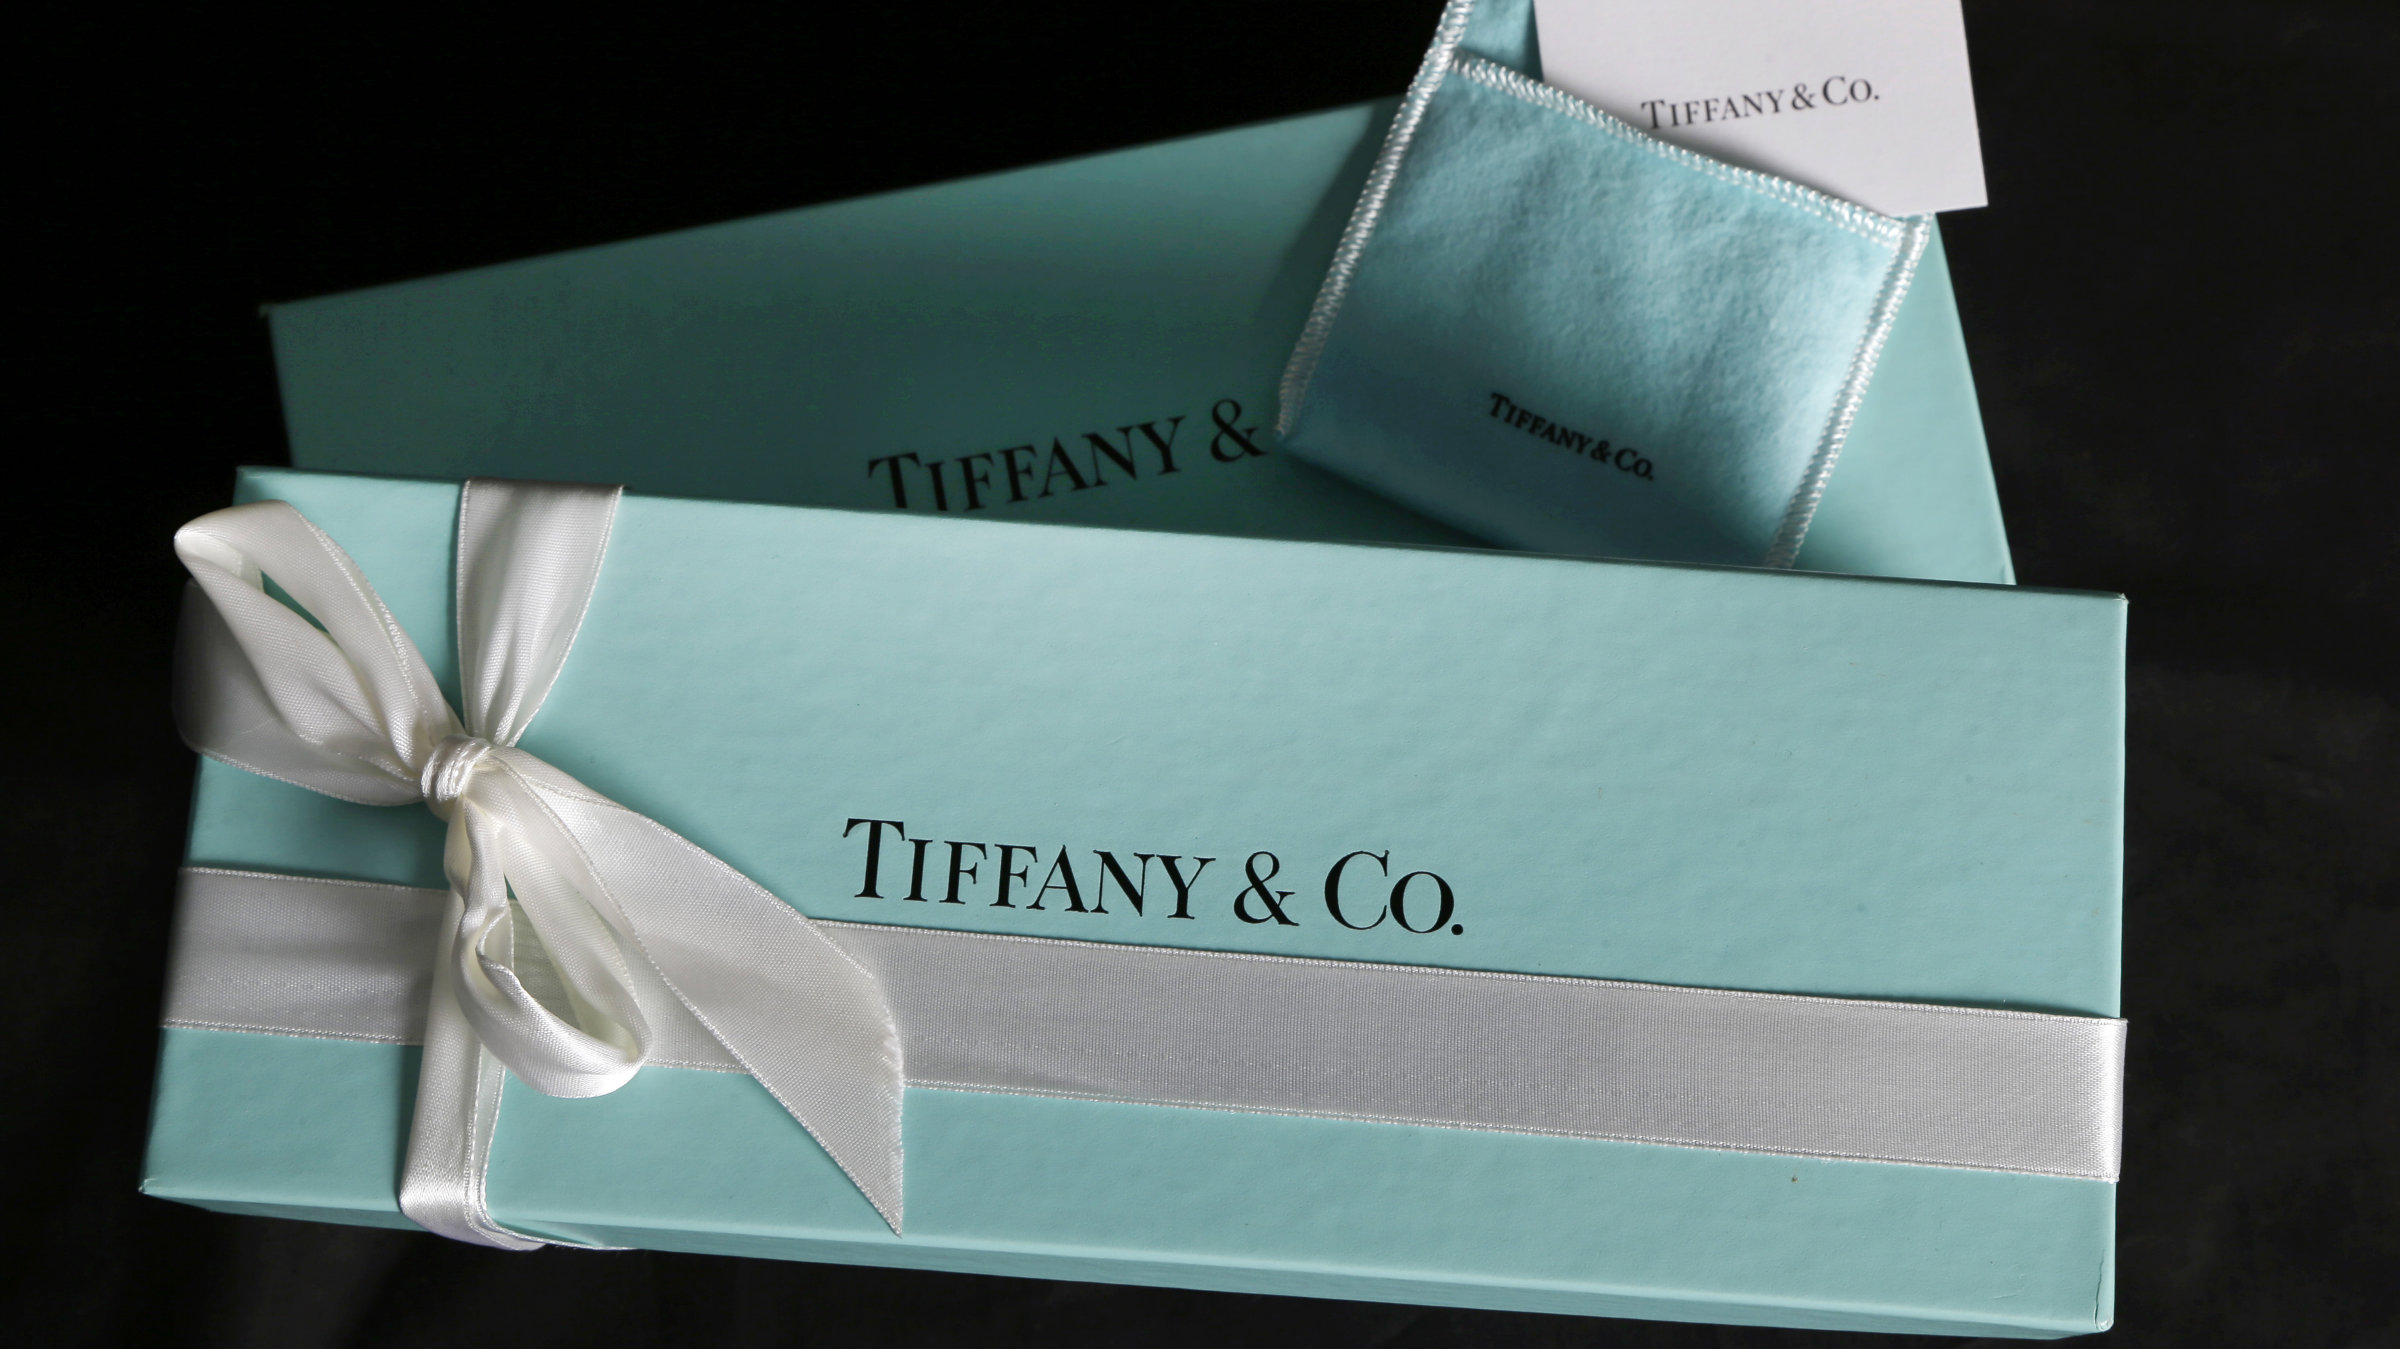 bf41606a07b Tiffany's blue boxes are red hot on the black market — Quartz